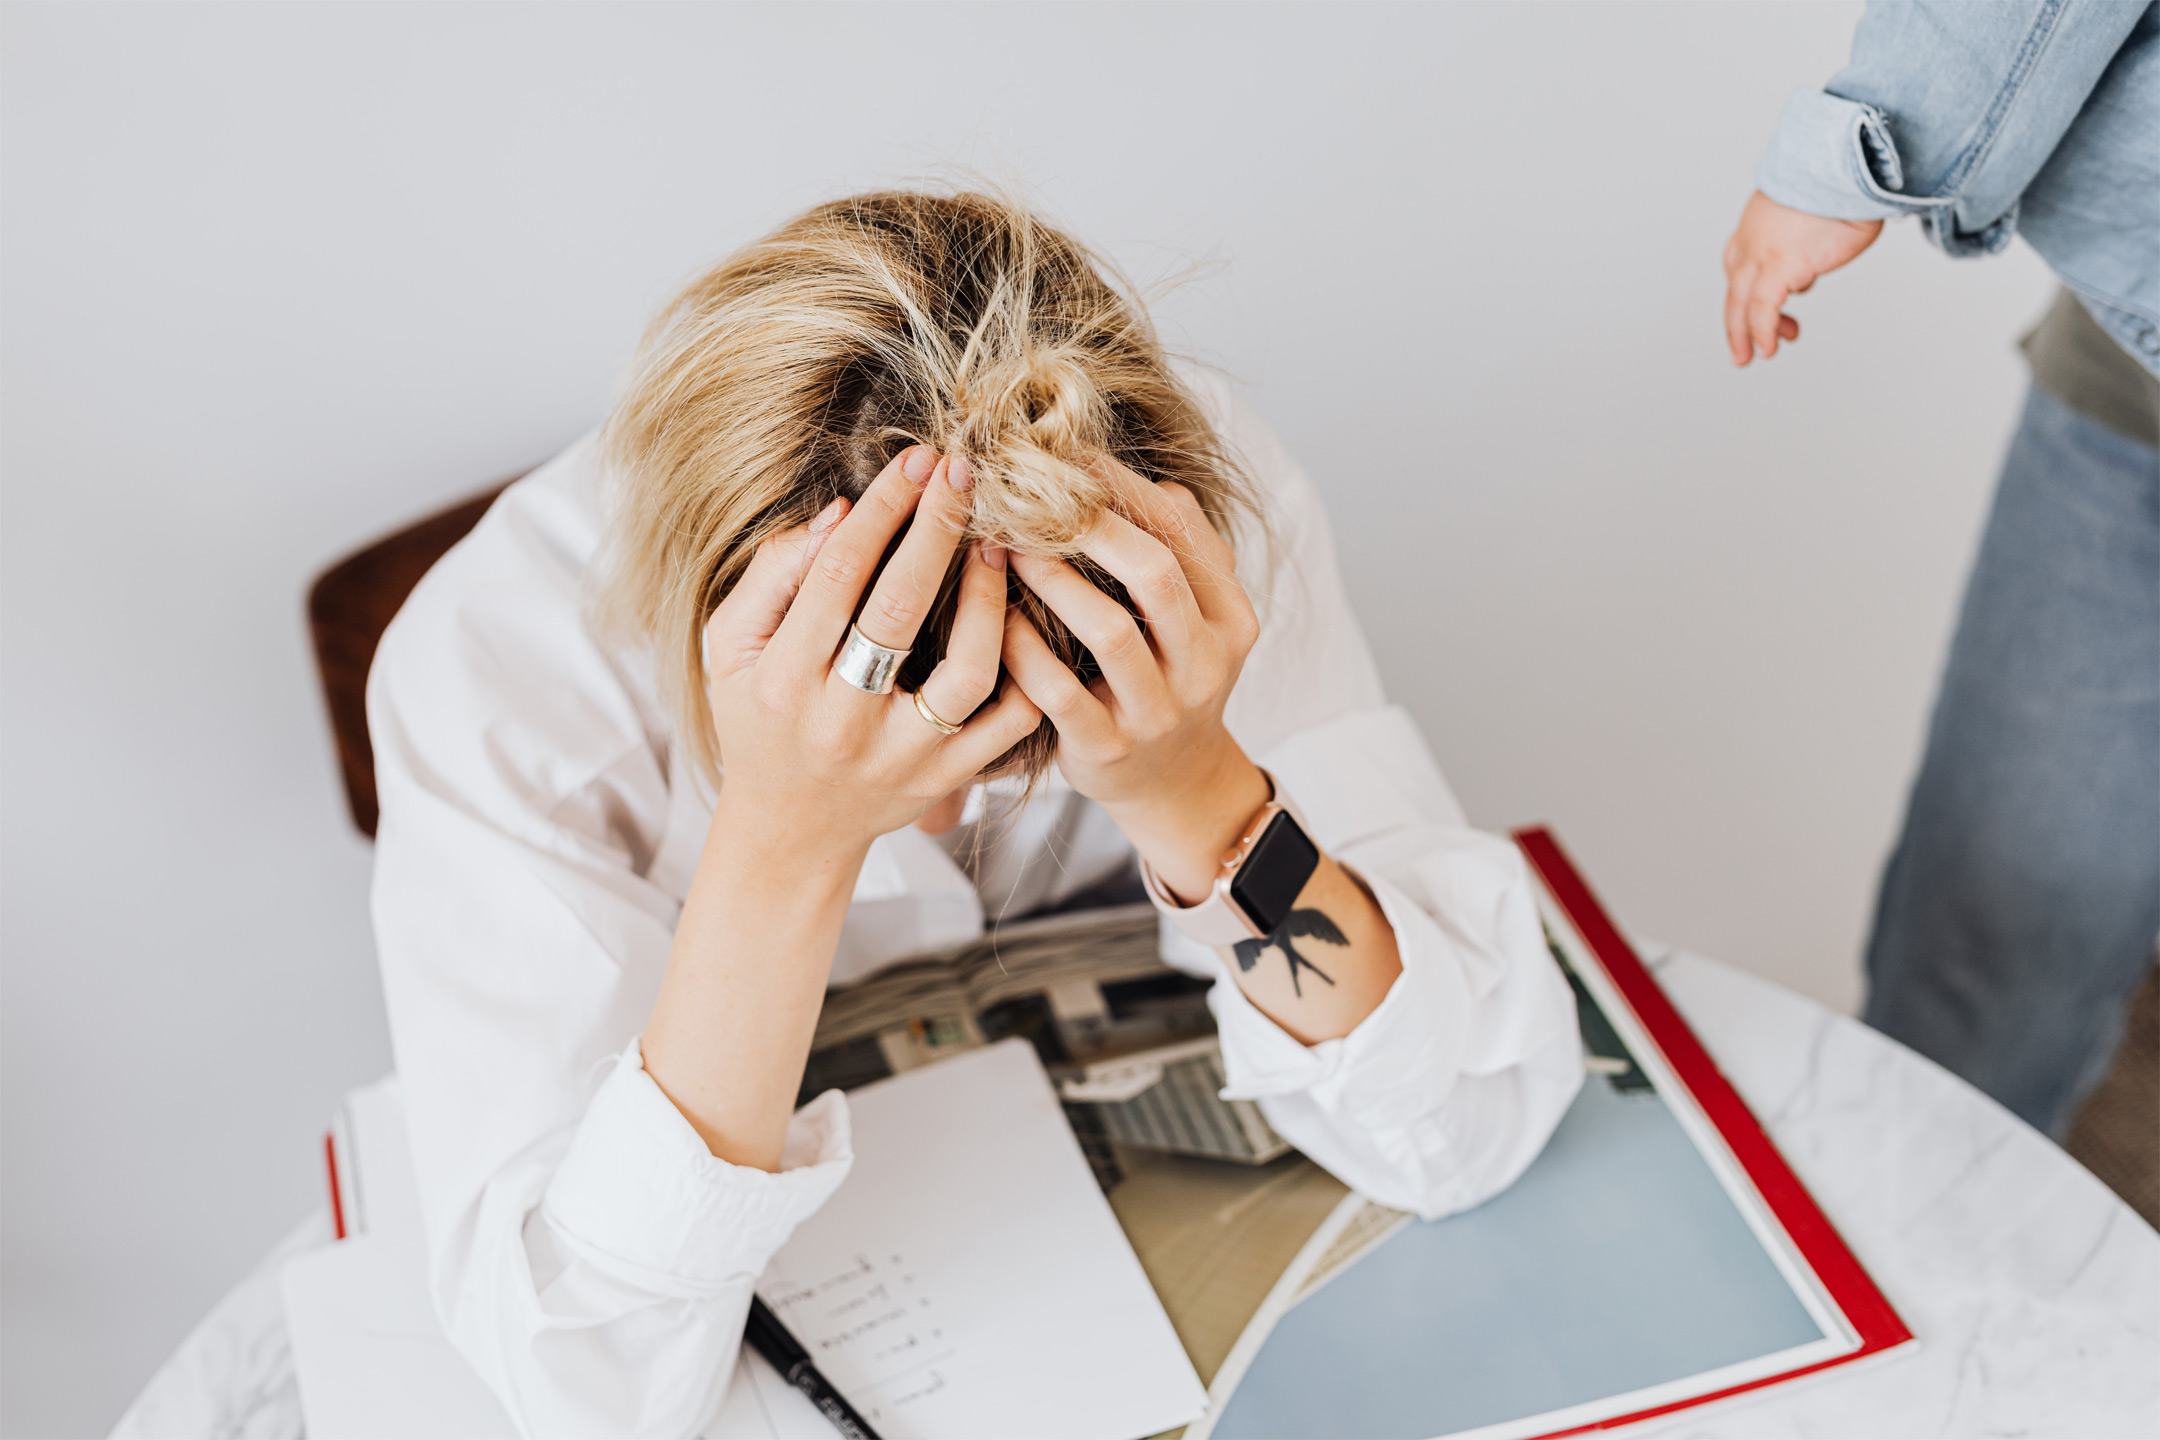 stressed-working-woman2160